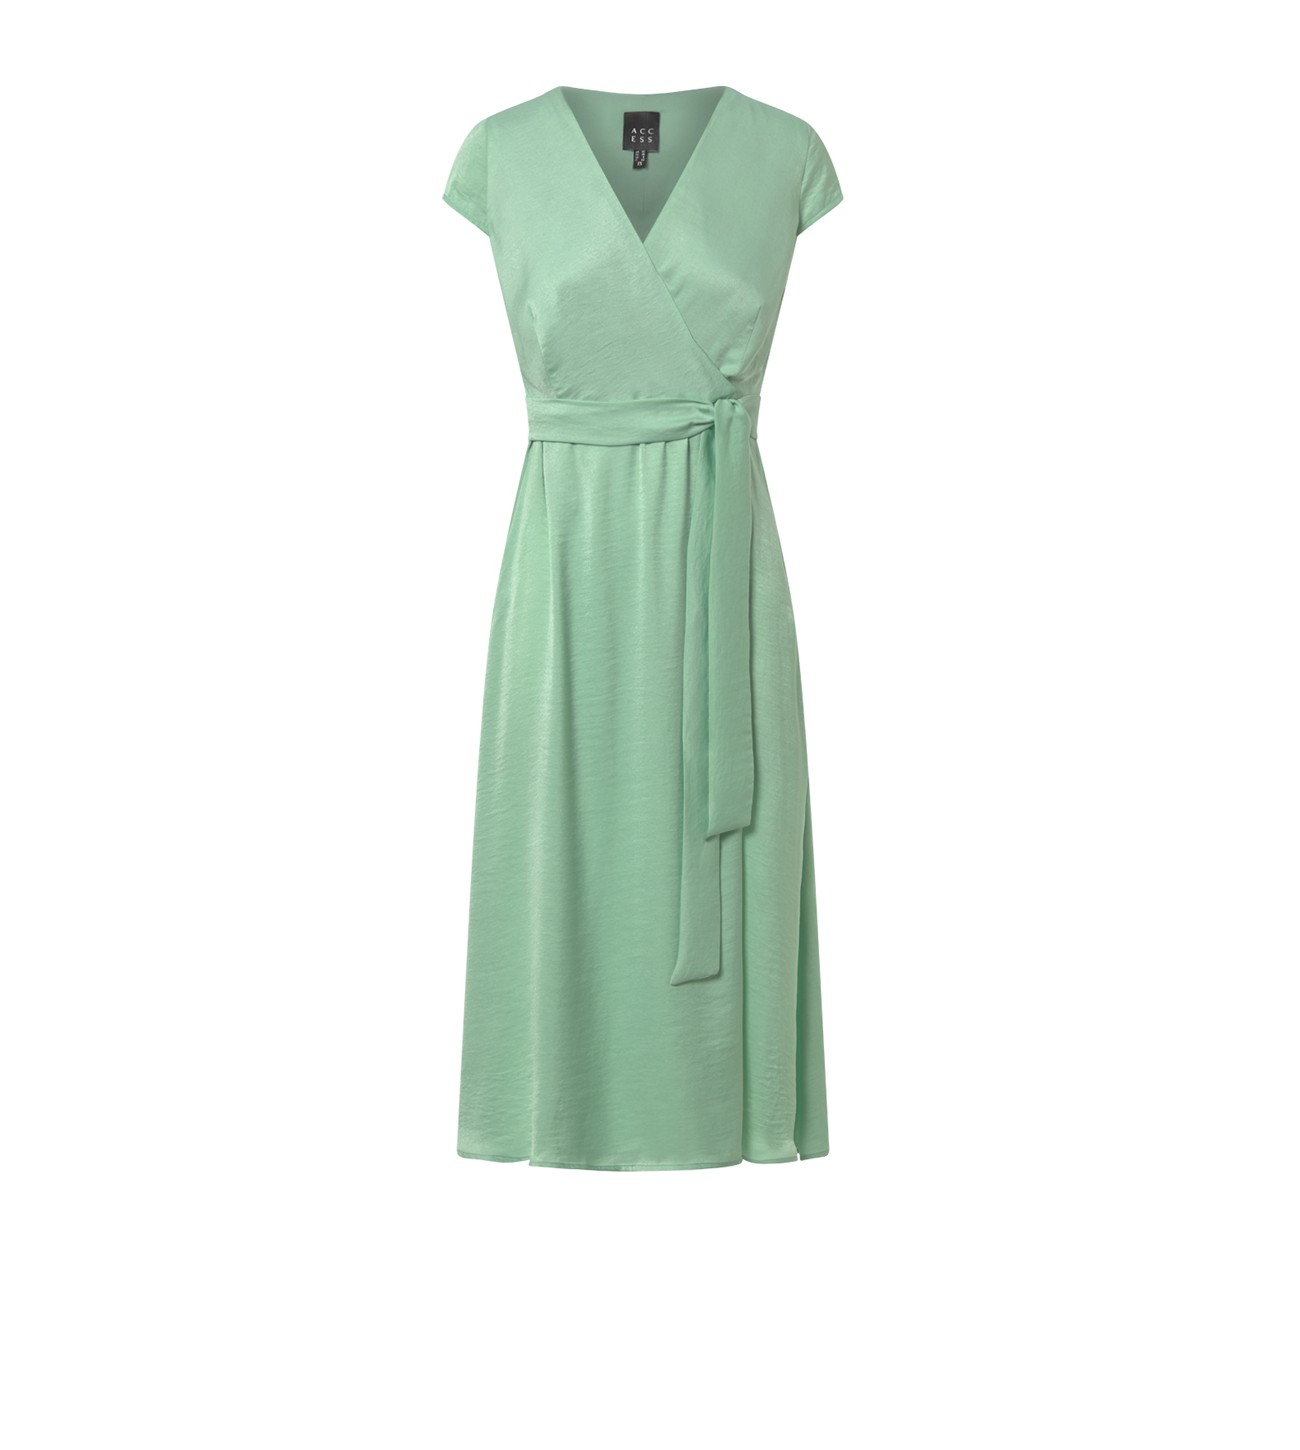 ACCESS_MIDI_CROSSOVER_DRESS_MARIONA_FASHION_CLOTHING_WOMAN_SHOP_ONLINE_3586